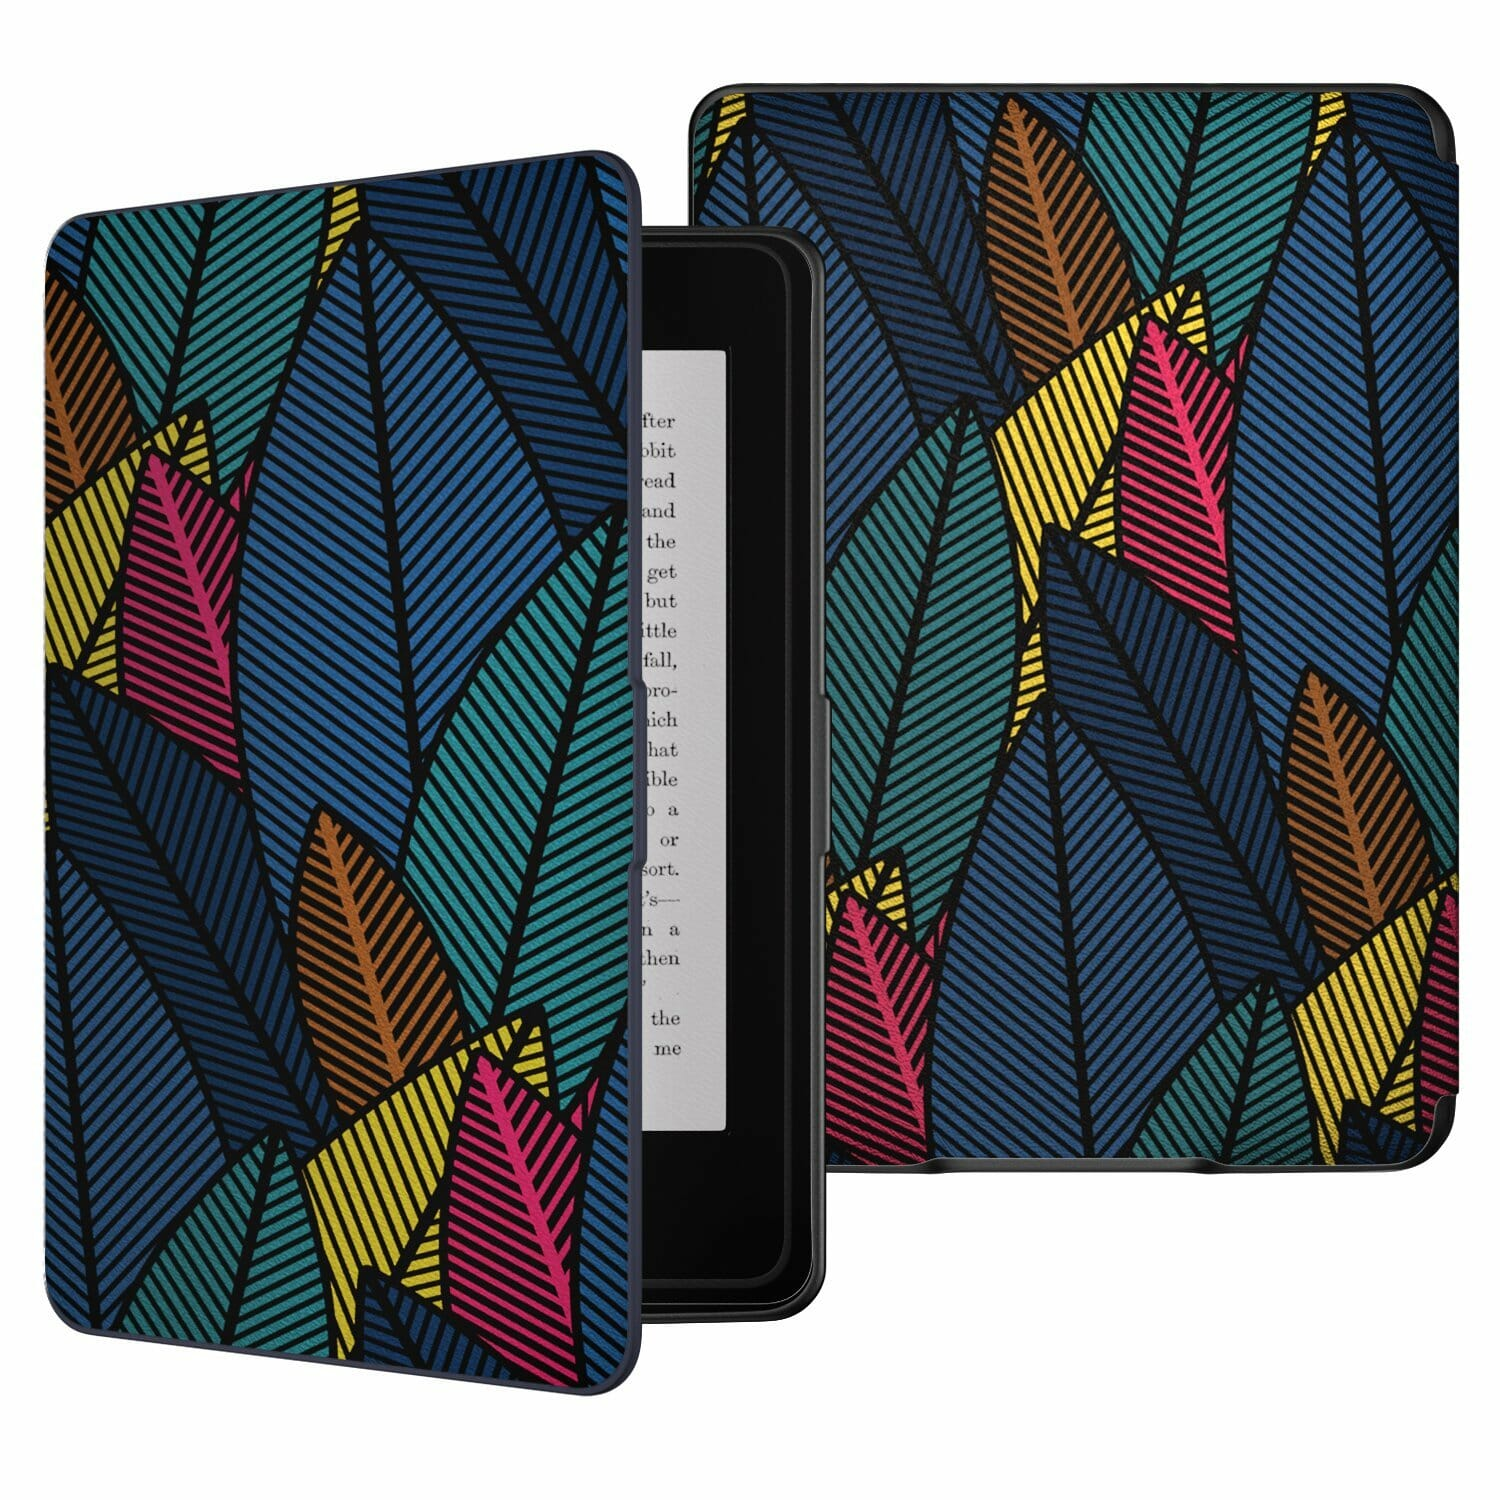 gifts-for-book-lovers-kindle-cover